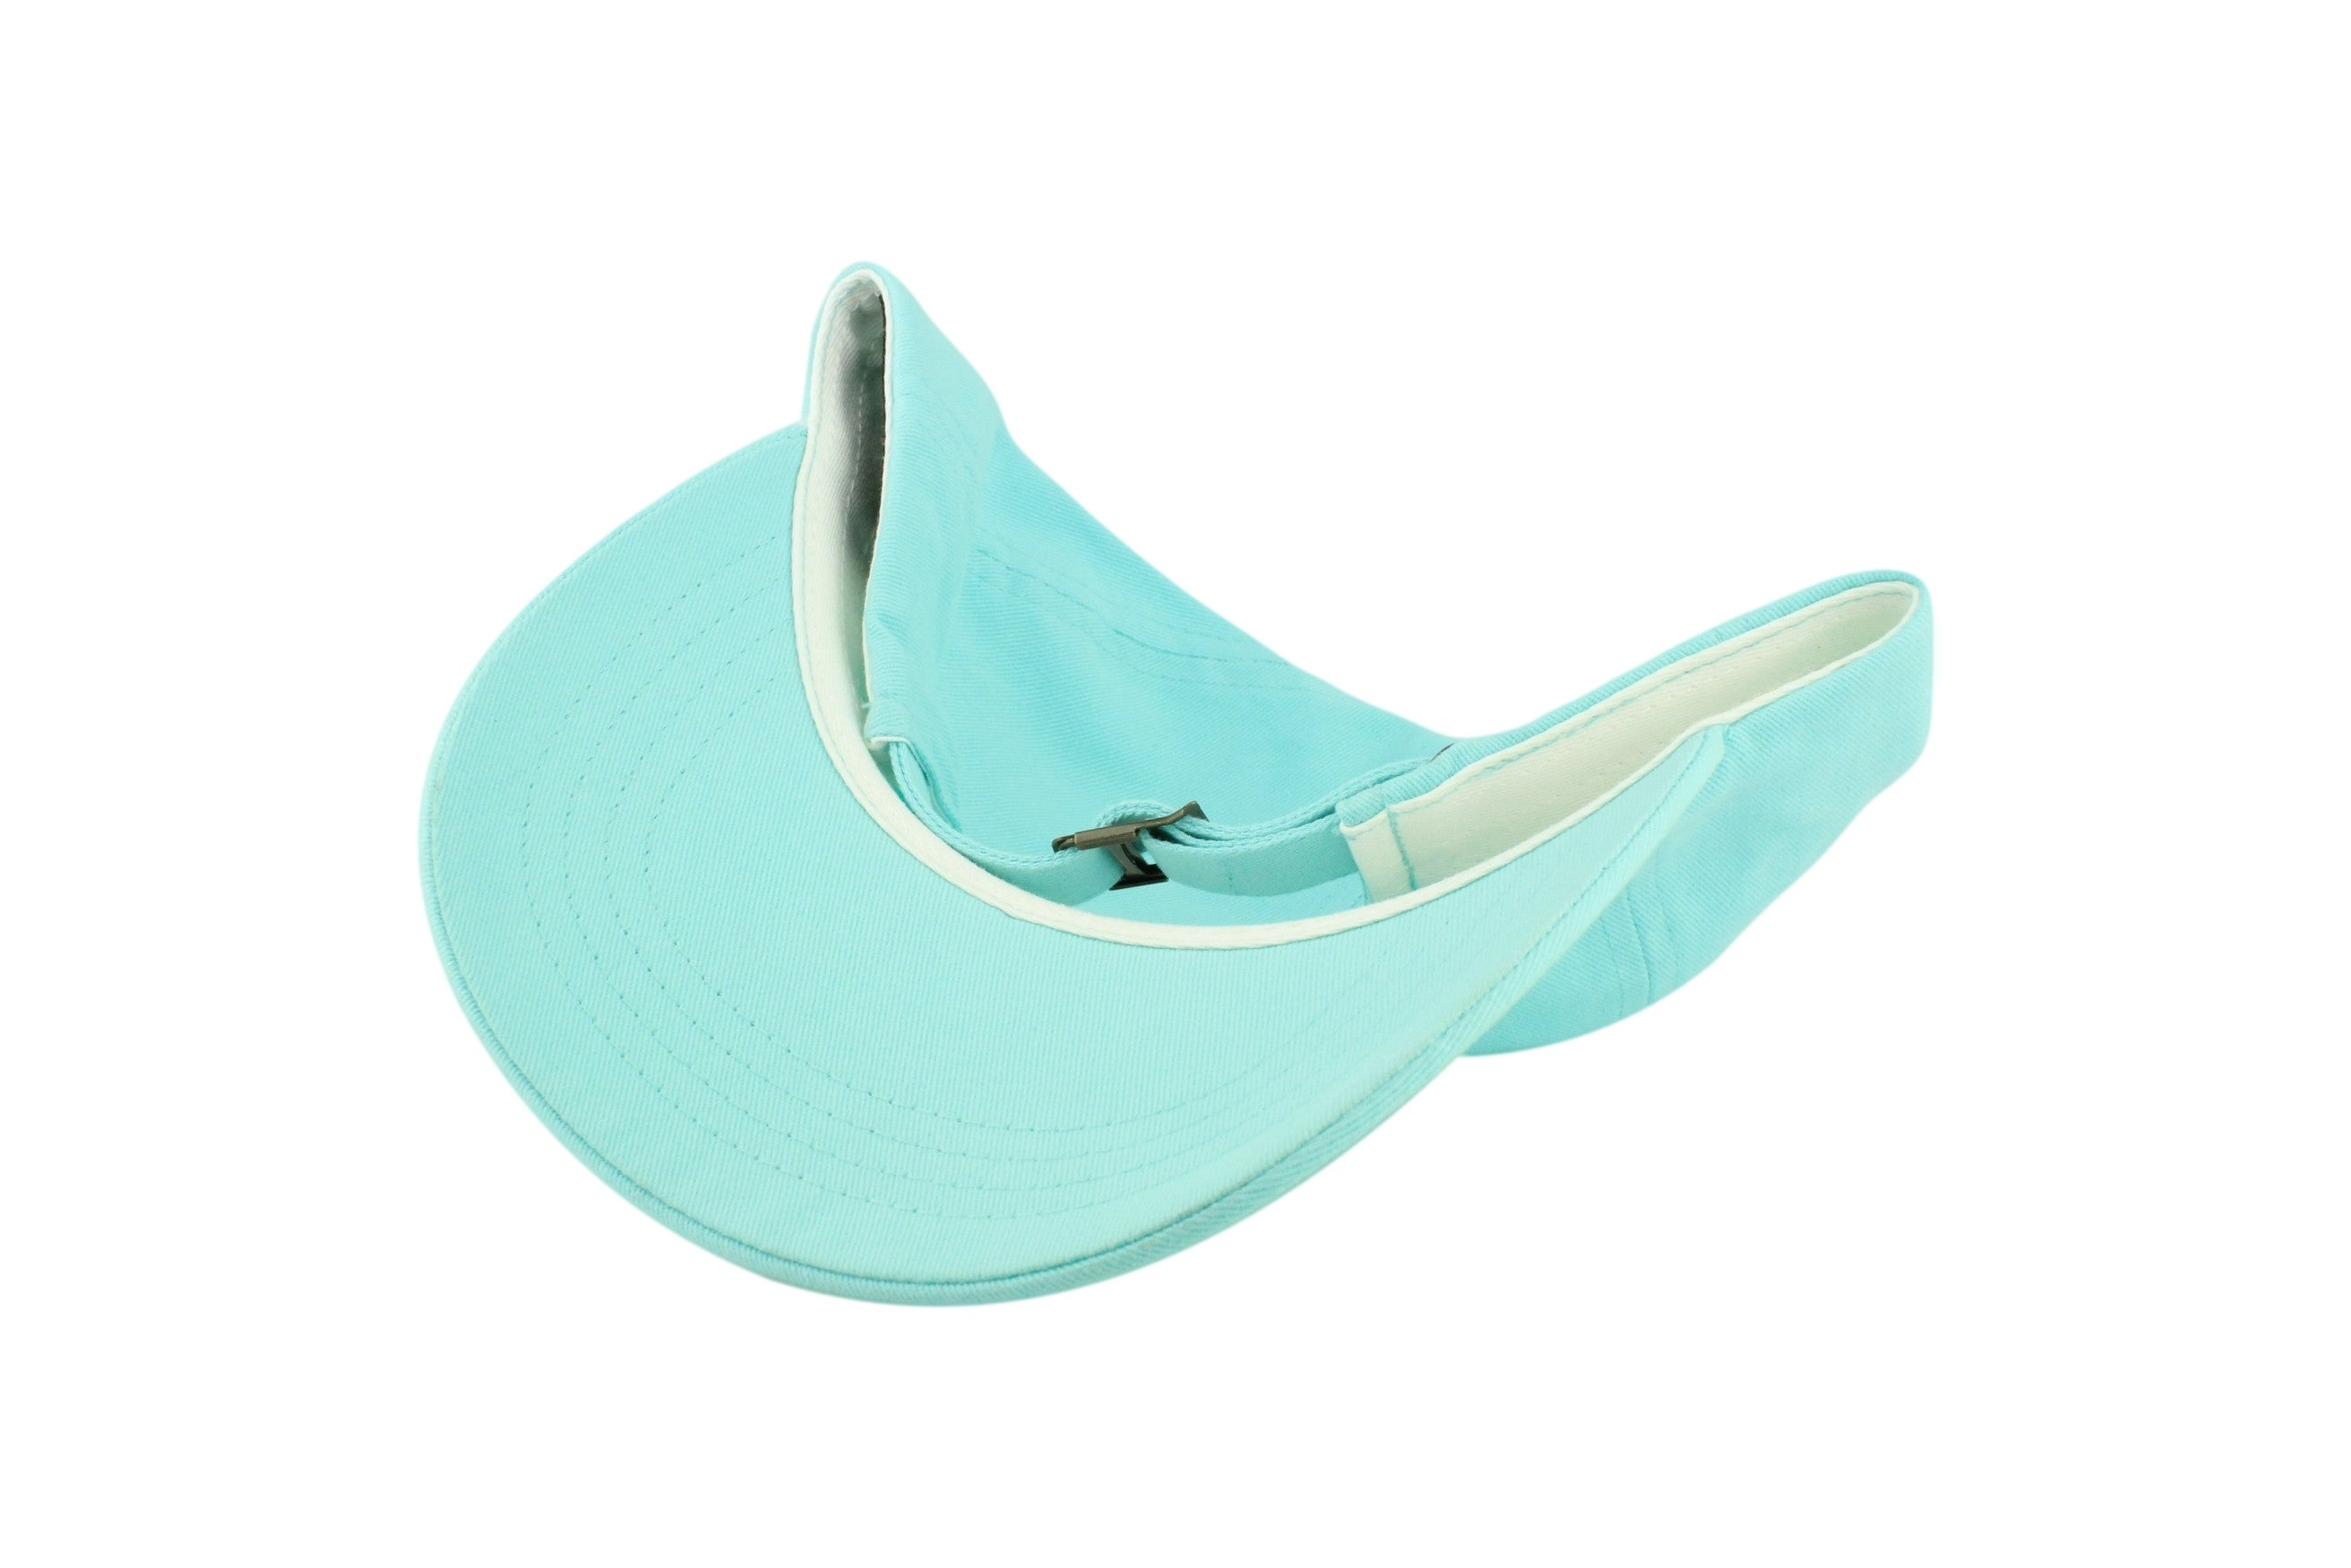 873ef3fb544 1LoveIE Signature Dad Hat (Teal White)